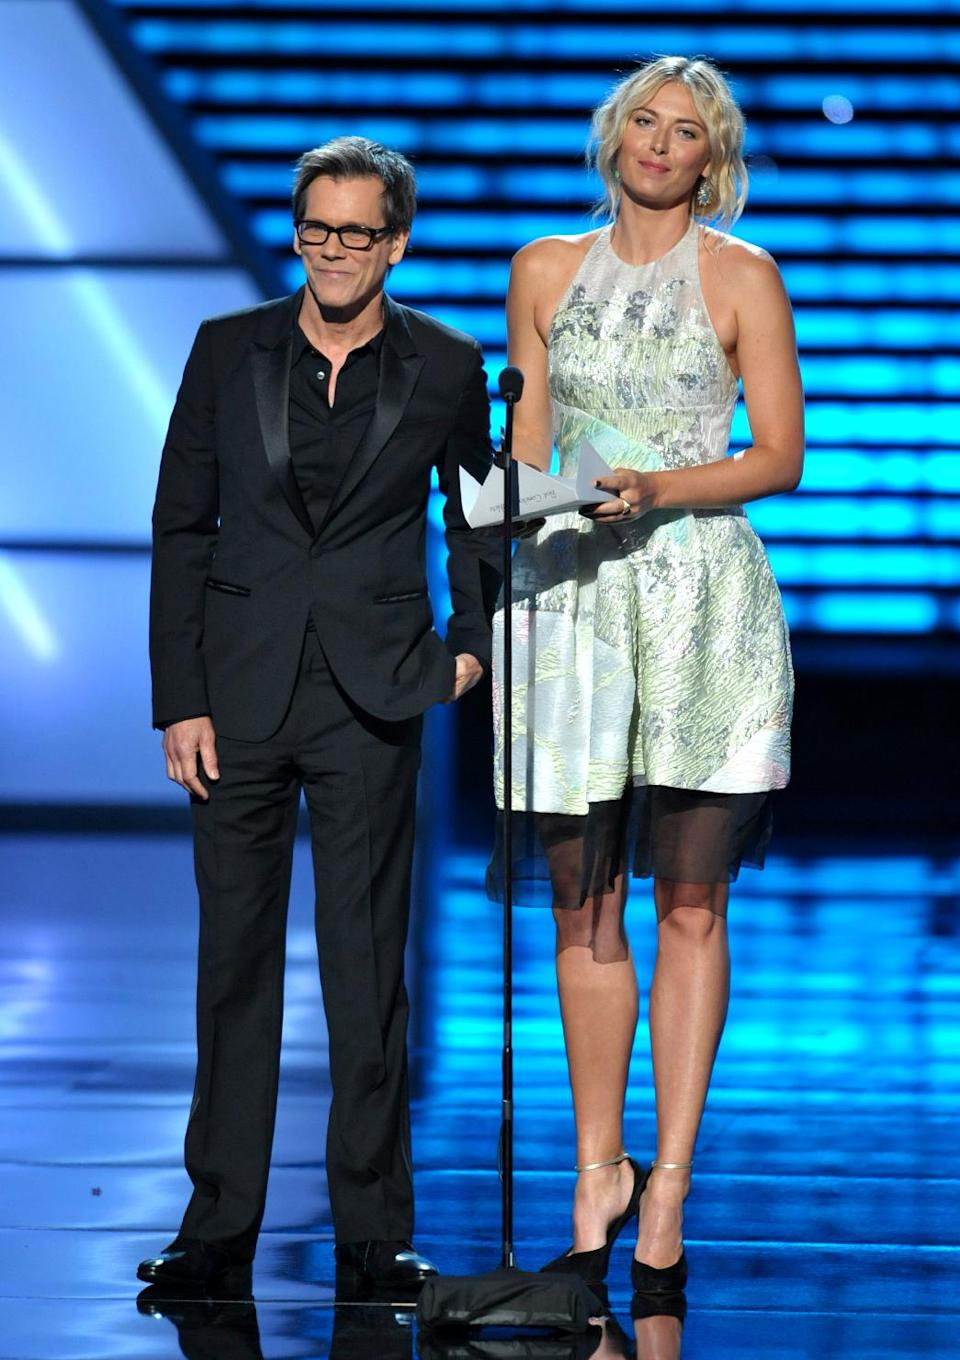 Kevin Bacon, left, and Maria Sharapova present an award at the ESPY Awards on Wednesday, July 17, 2013, at the Nokia Theater in Los Angeles. (Photo by John Shearer/Invision/AP)